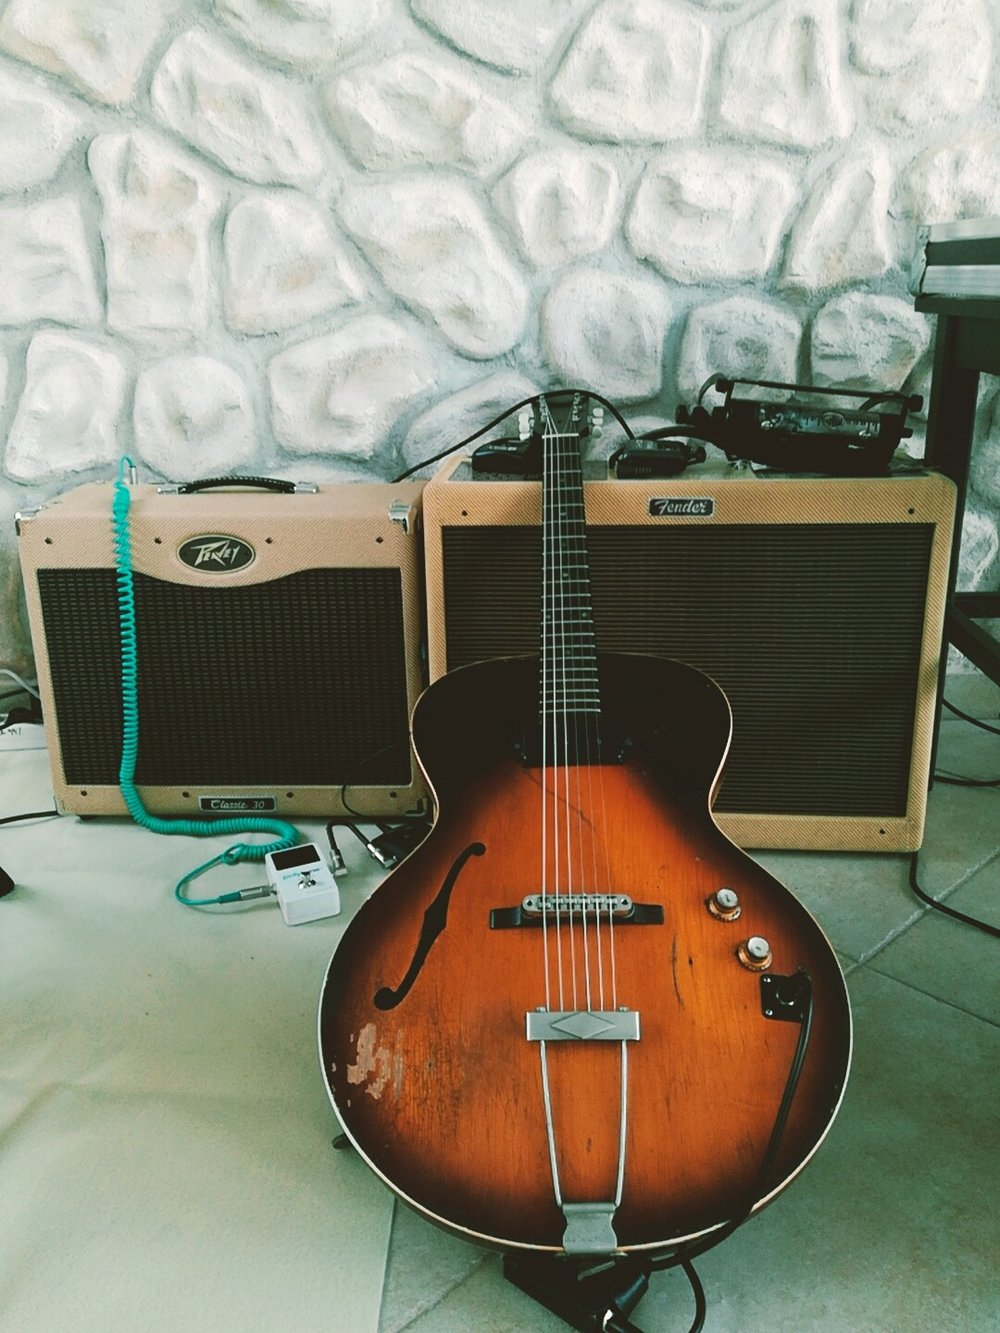 - Marco's Gibson 1964